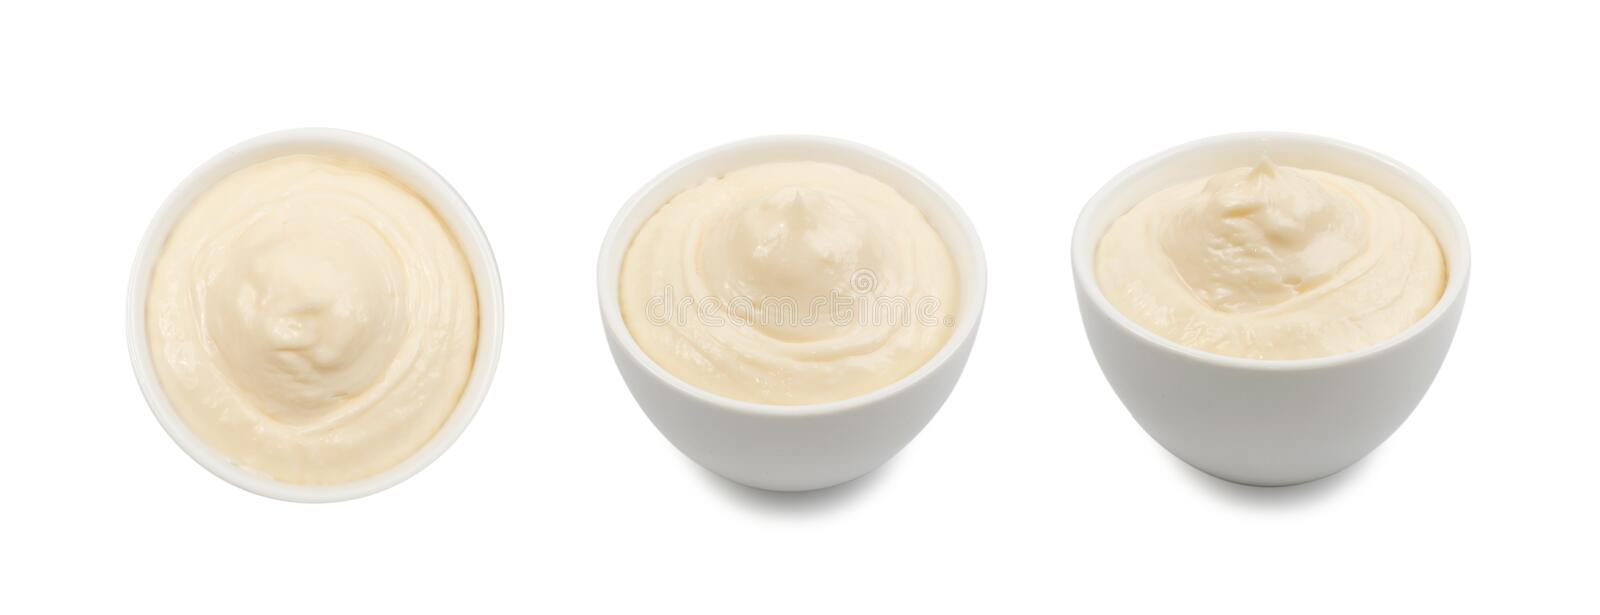 Olive Mayonnaise or Mayo Sauce in Small White Bowl Close Up stock photo